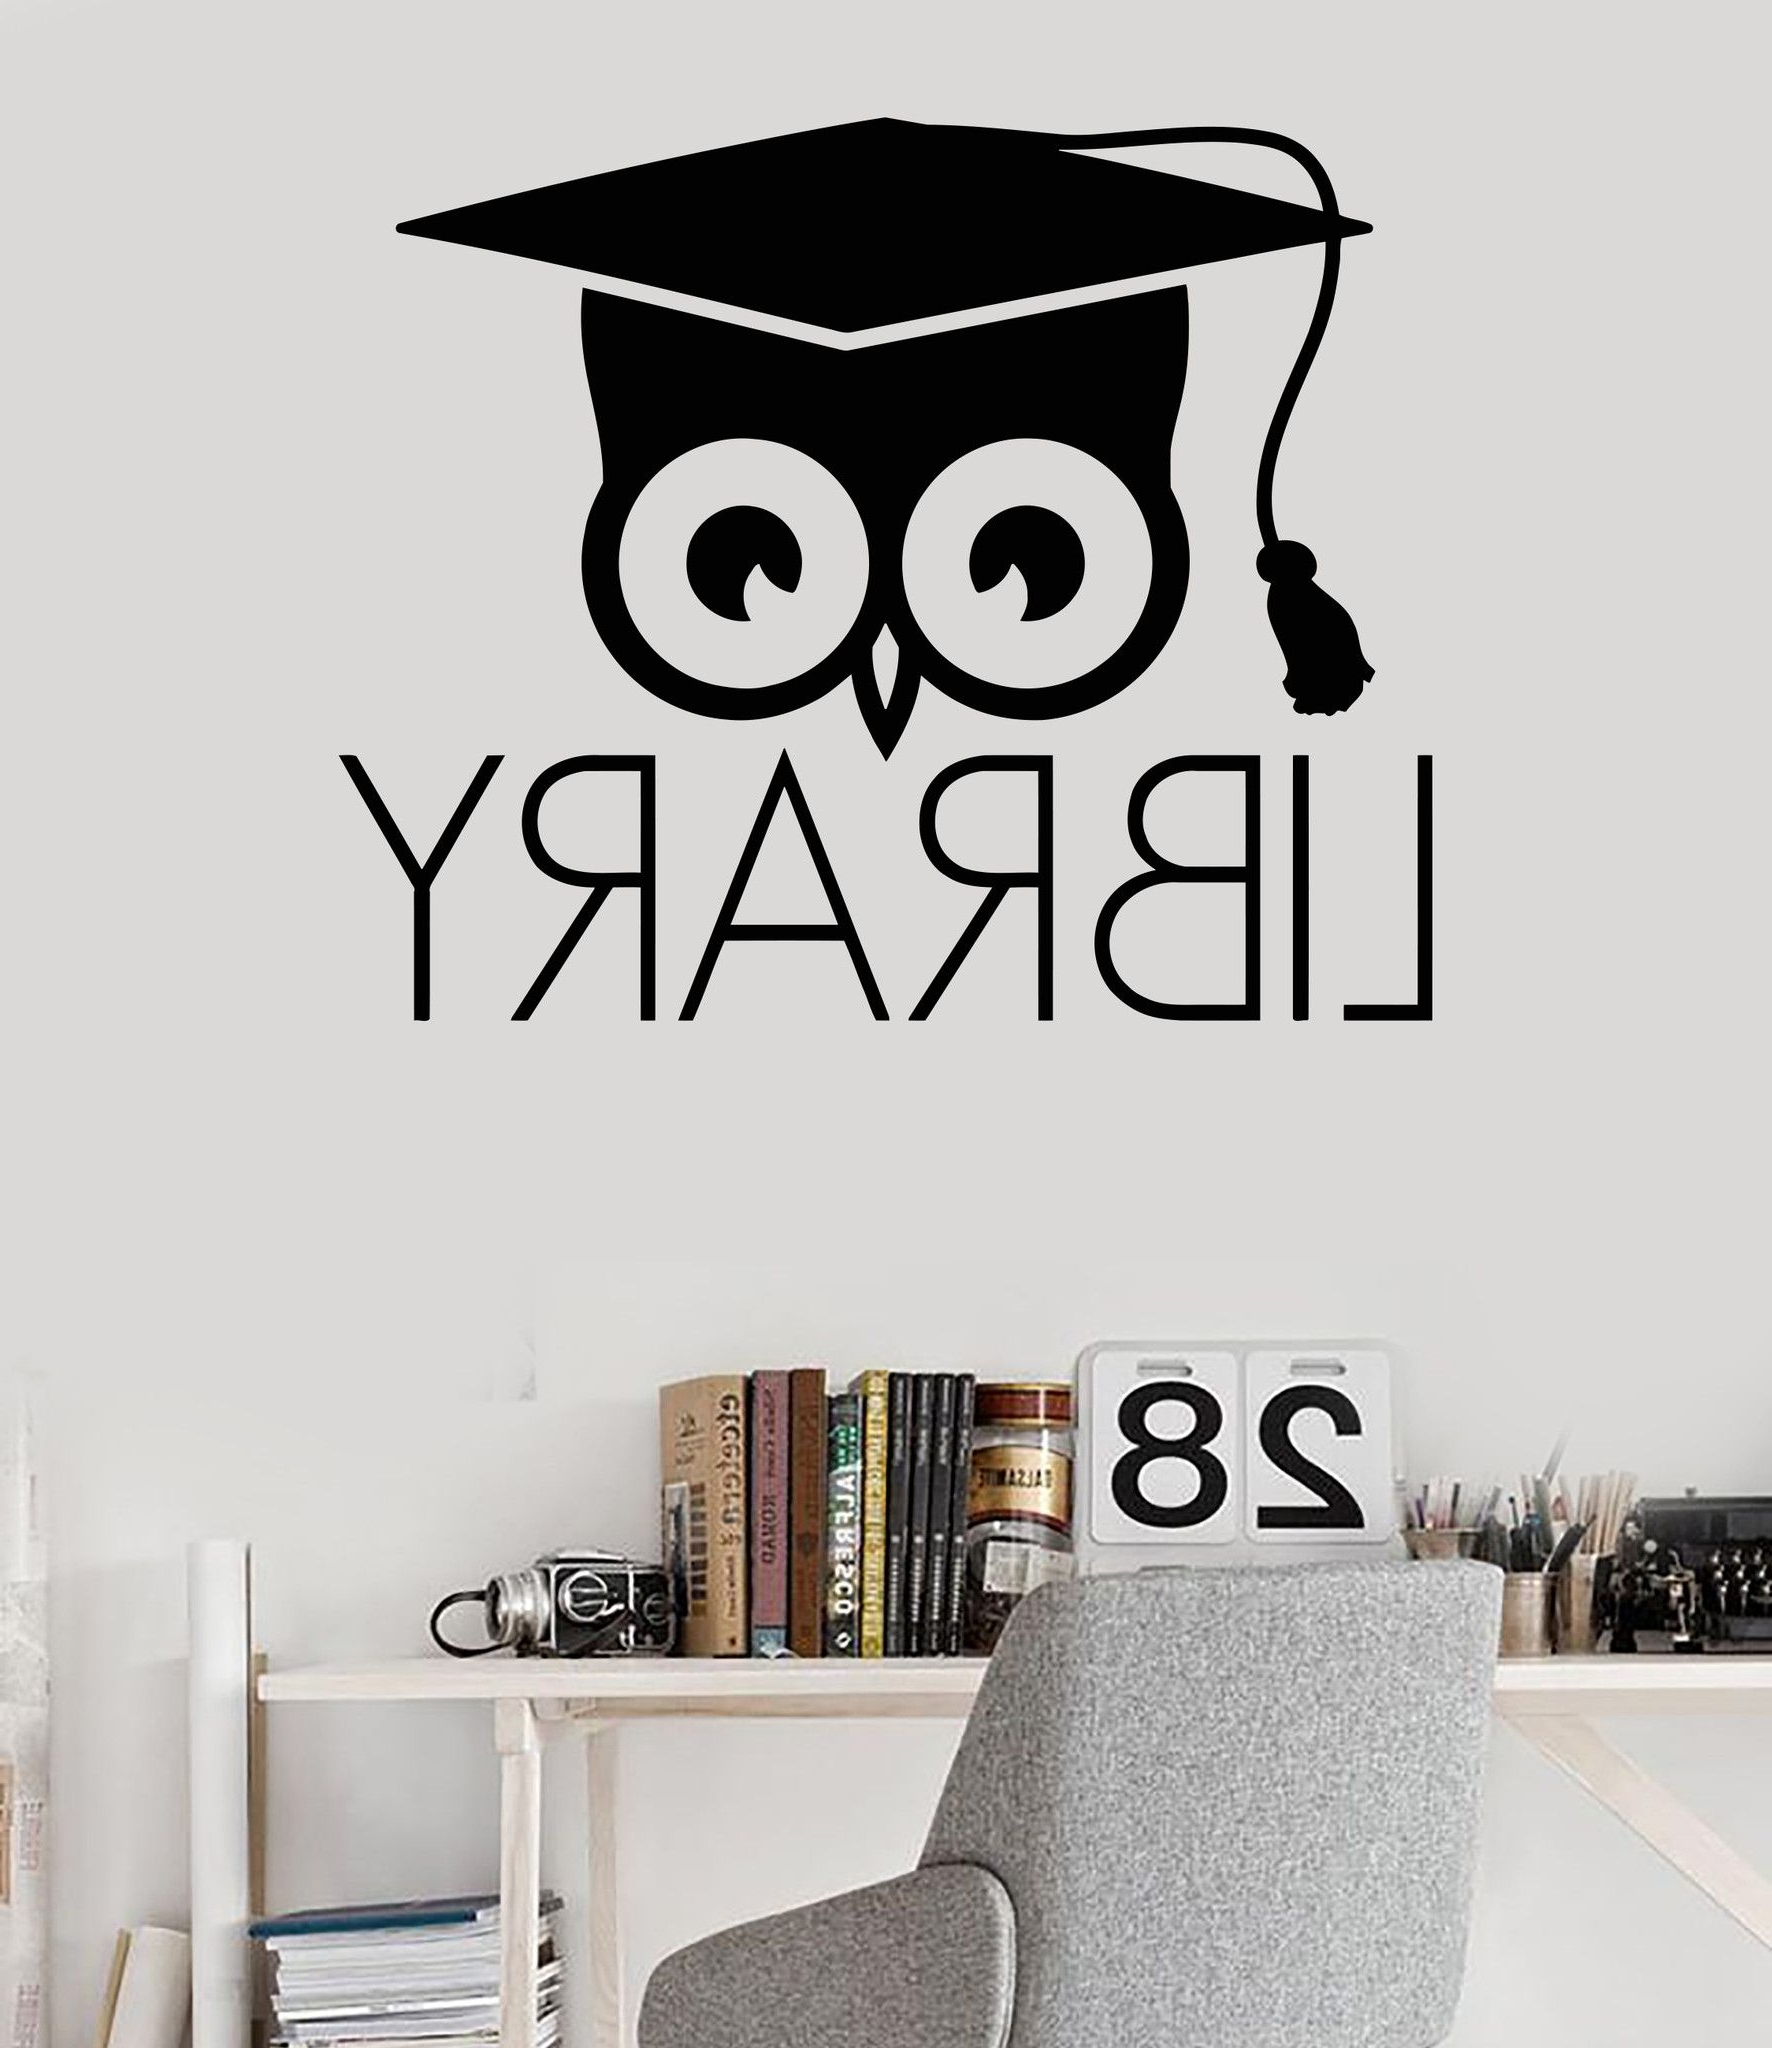 Latest Vinyl Wall Decal Library Books Bookworm Academic Owl Scientific For Preschool Classroom Wall Decals (View 8 of 15)